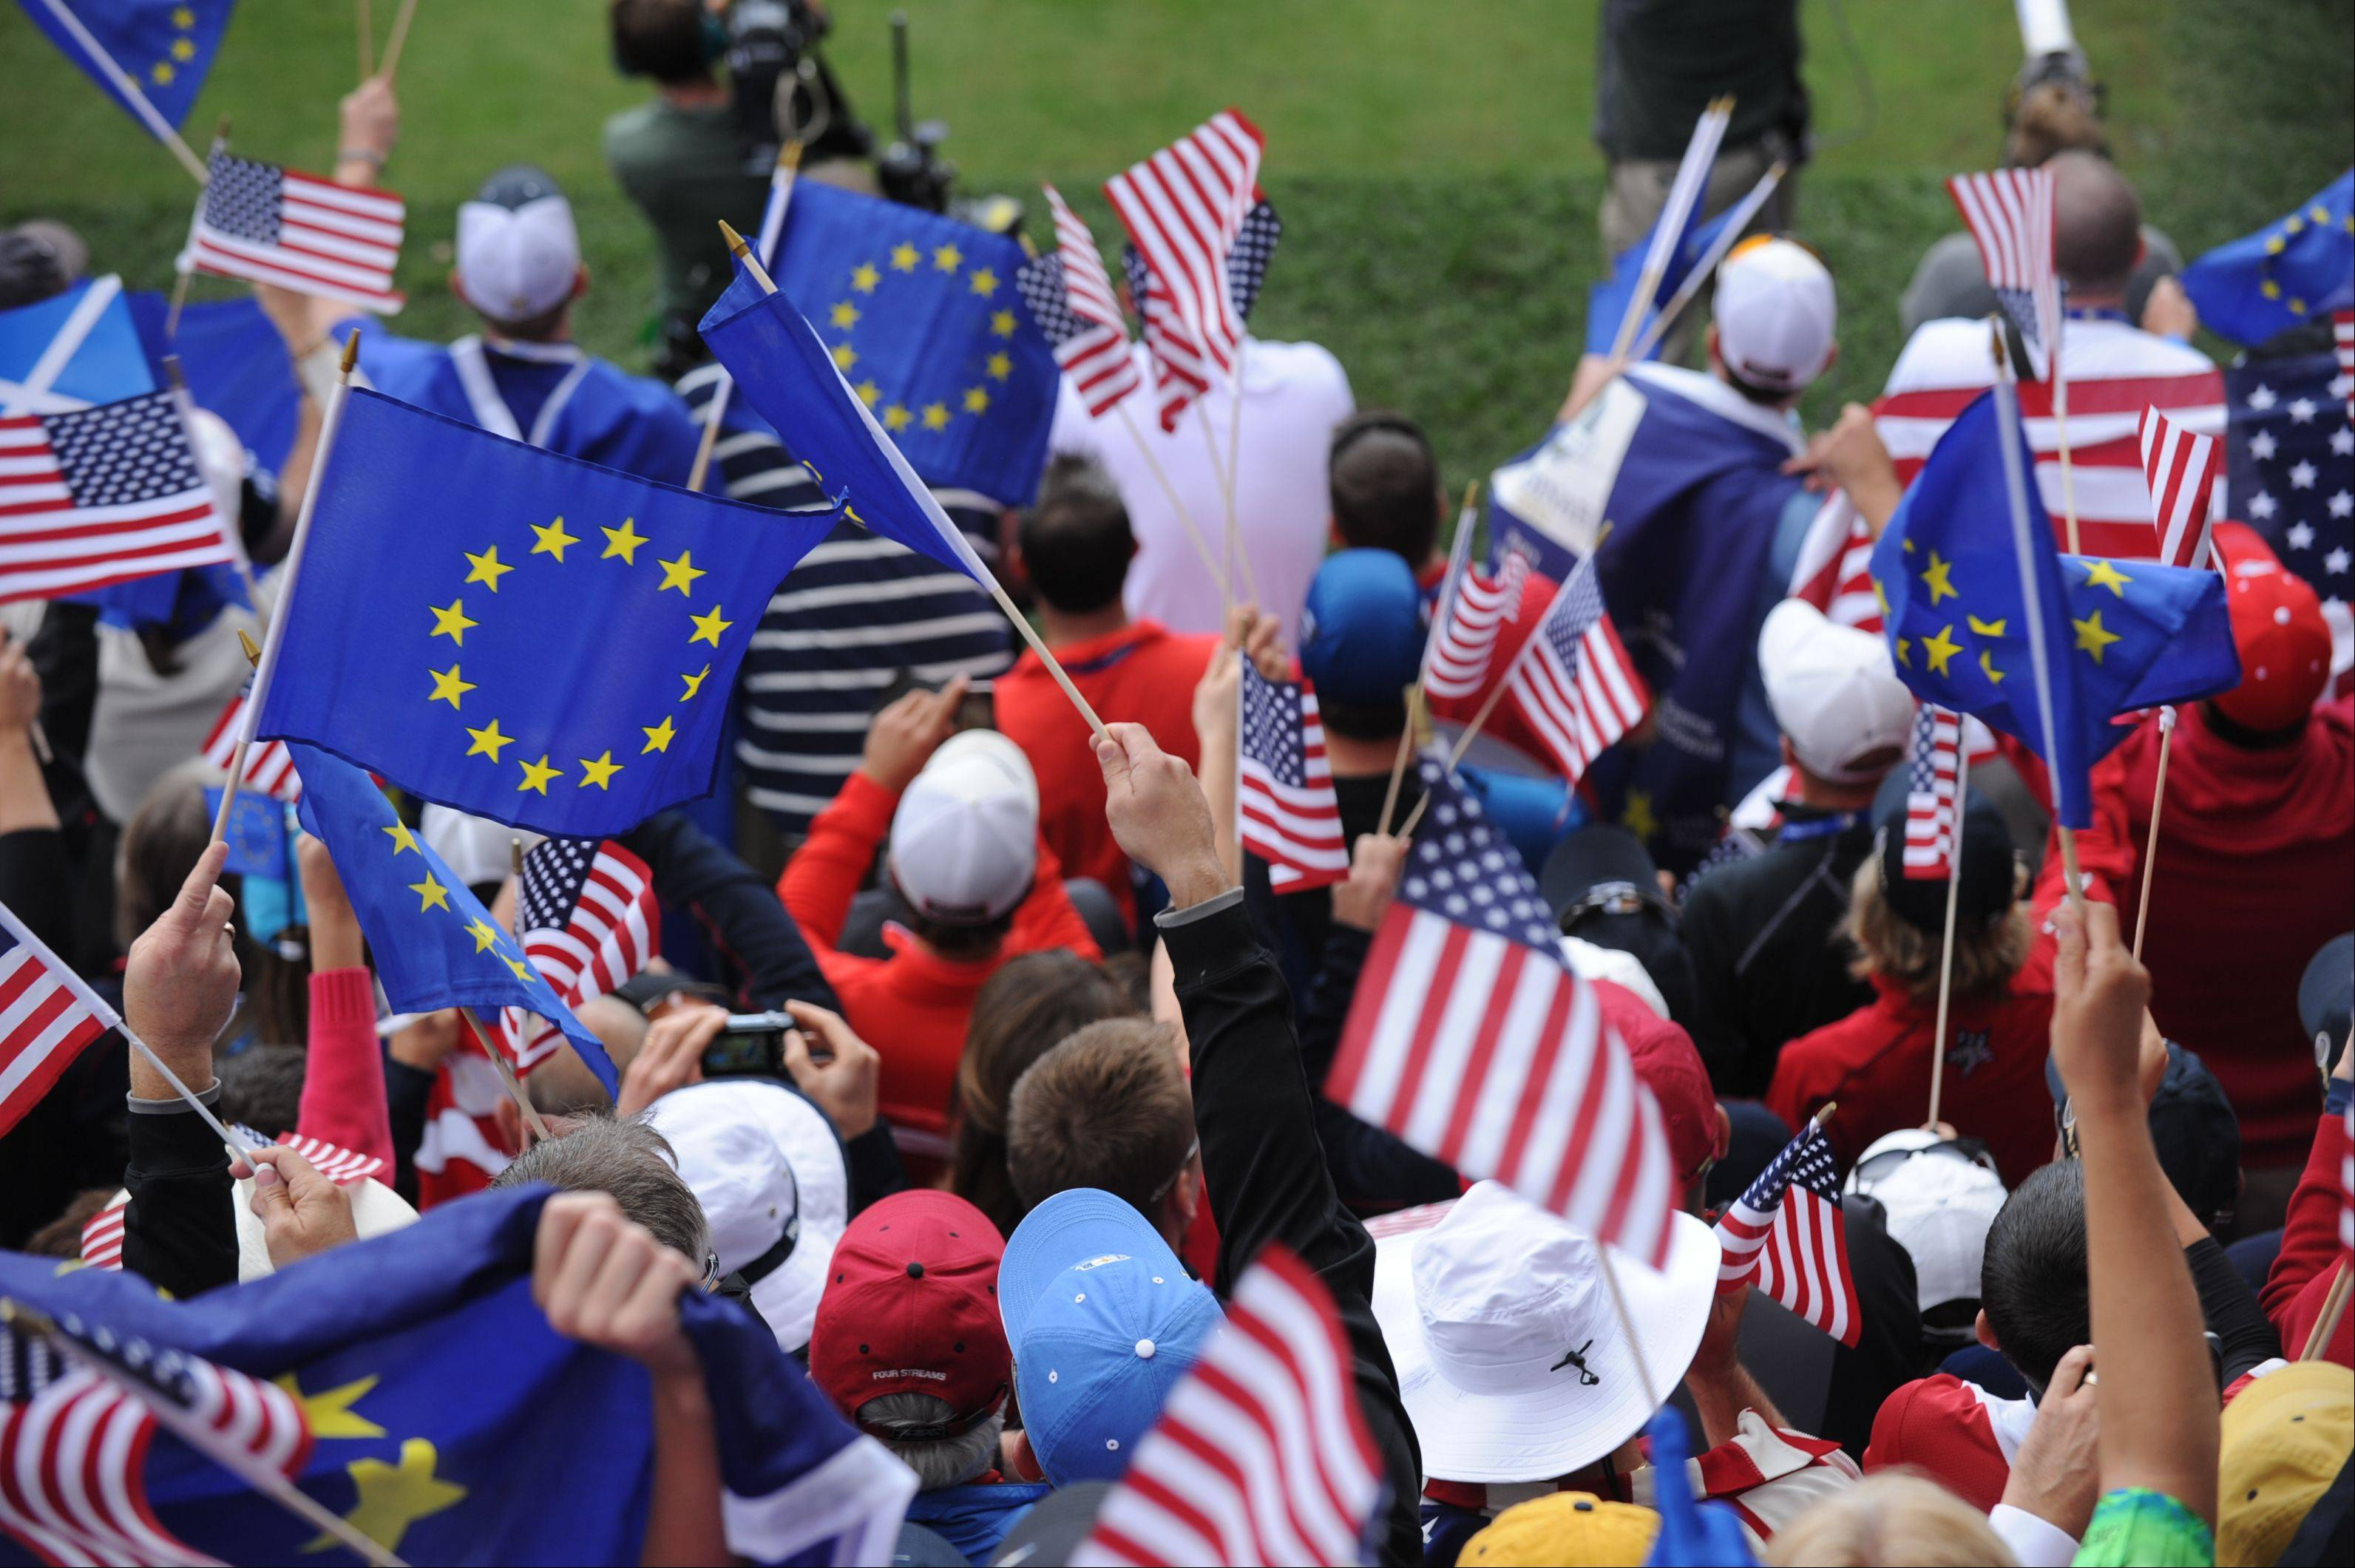 With the 39th Ryder Cup completed, fans for both the U.S and European teams can start preparing for the 40th Ryder Cup at Gleneagles in Scotland in 2014.